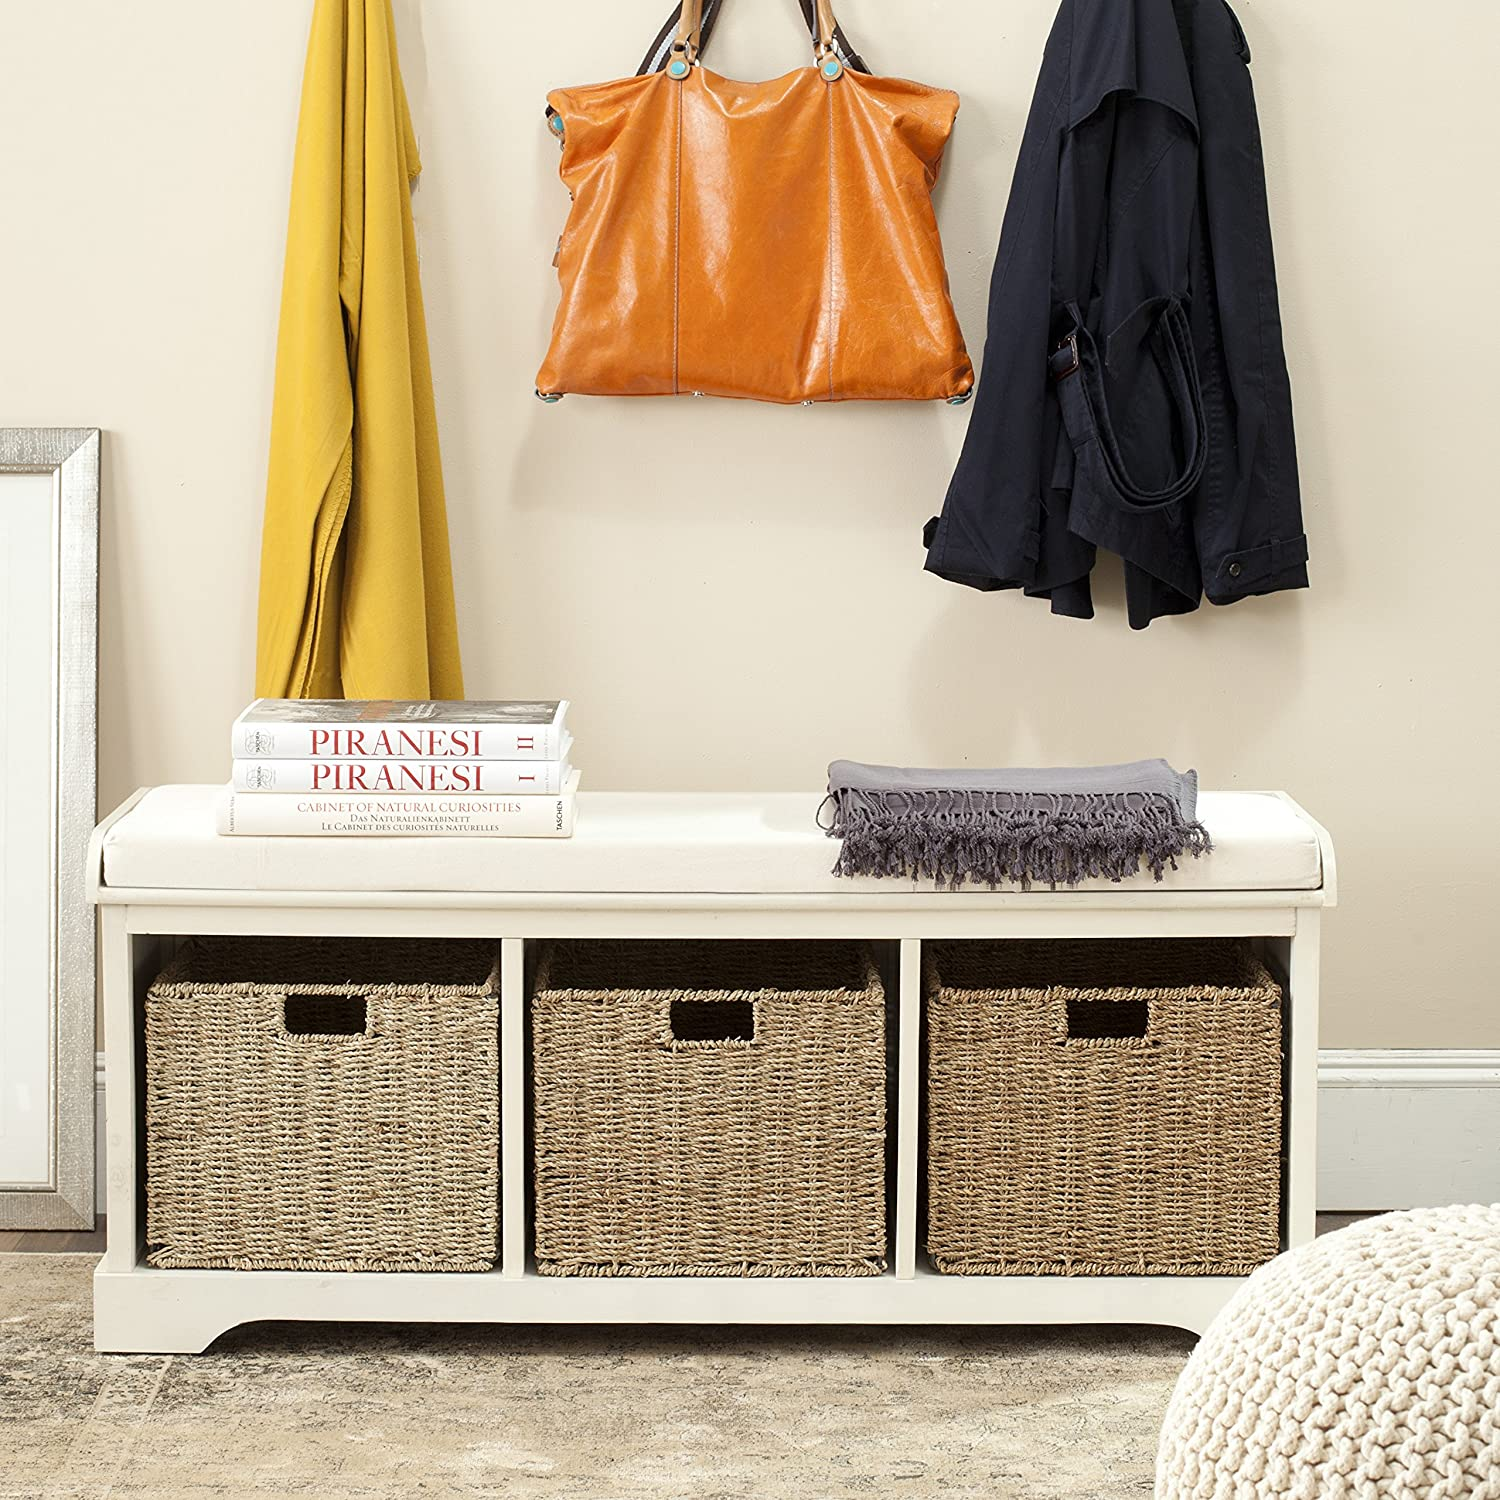 Safavieh American Homes Collection Lonan Grey and White Wicker Storage Bench